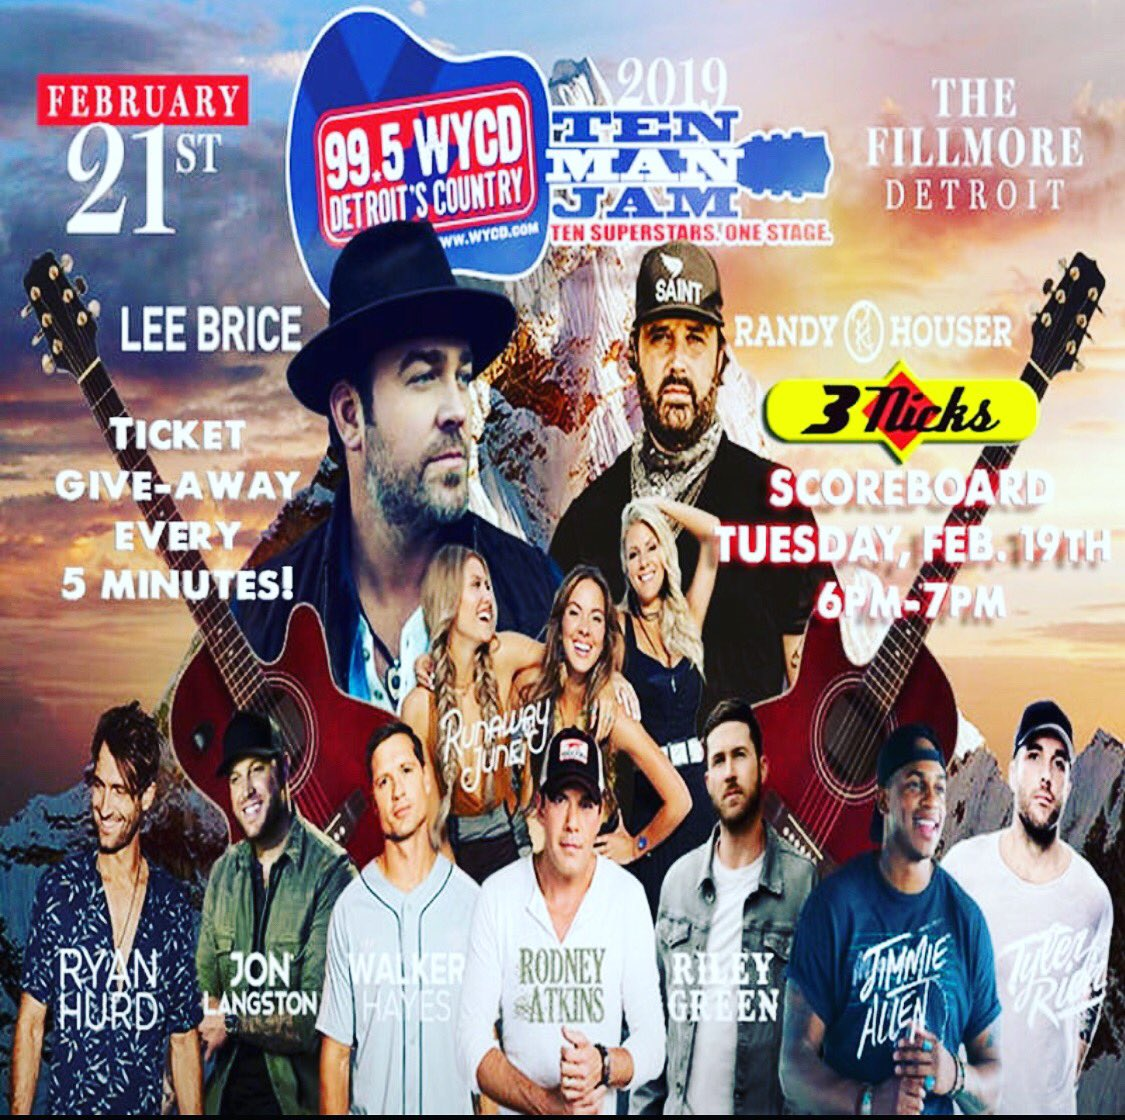 Join us tomorrow @ 6pm !! @995WYCD will be in the house giving away tickets to the Ten Man Jan every 5 minutes !! #livefrom #3nicksscoreboard #wycd #wintickets #tenmanjam #cheers